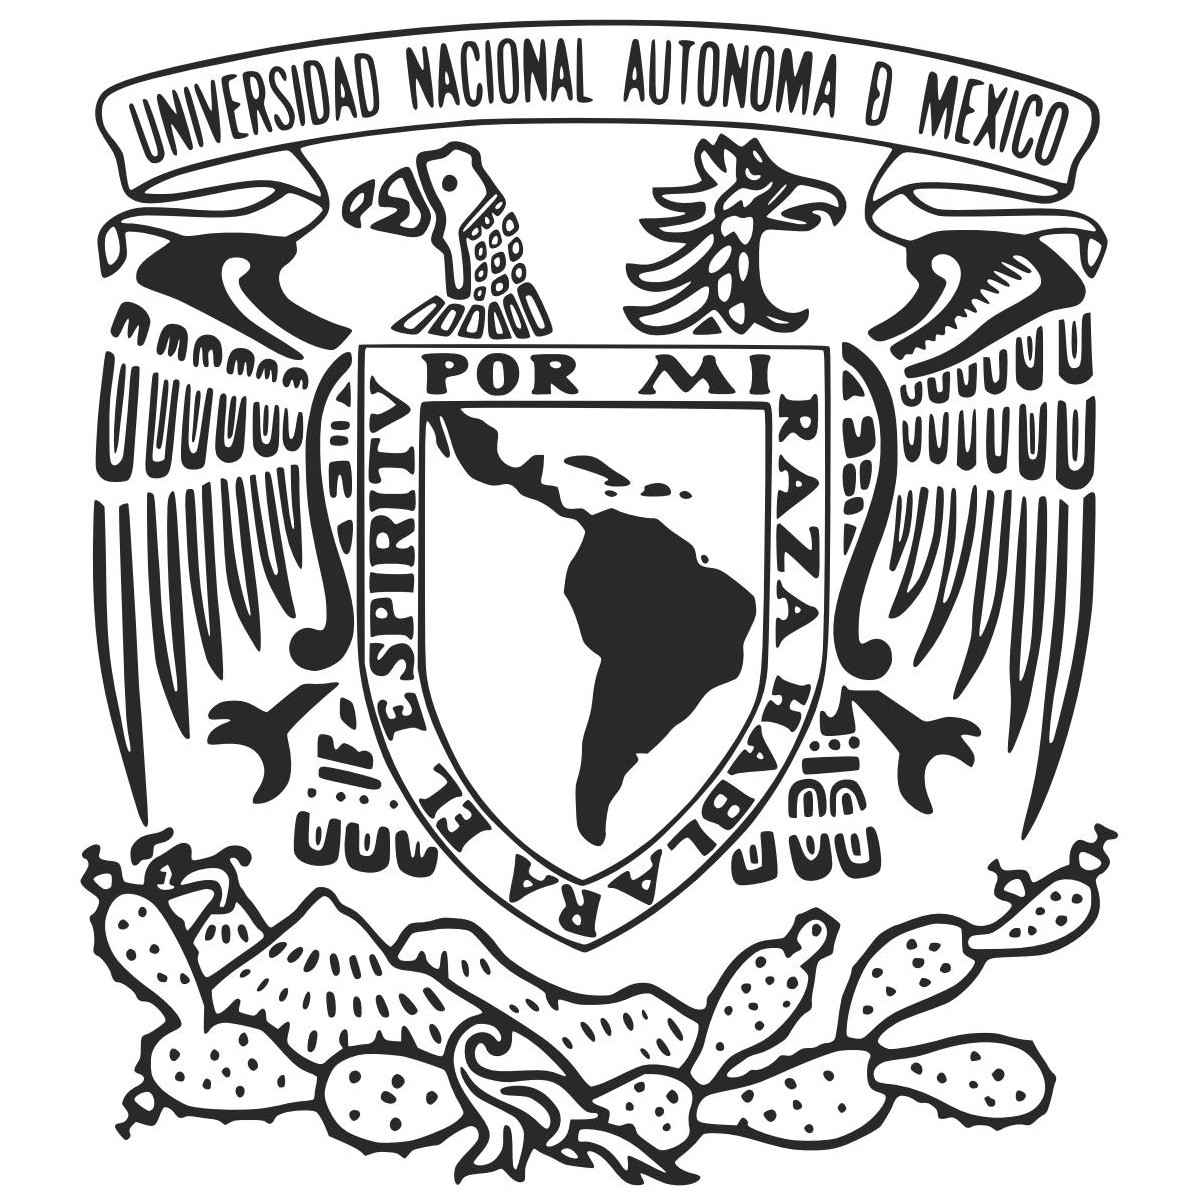 UNAM Logo [National Autonomous University of Mexico] png